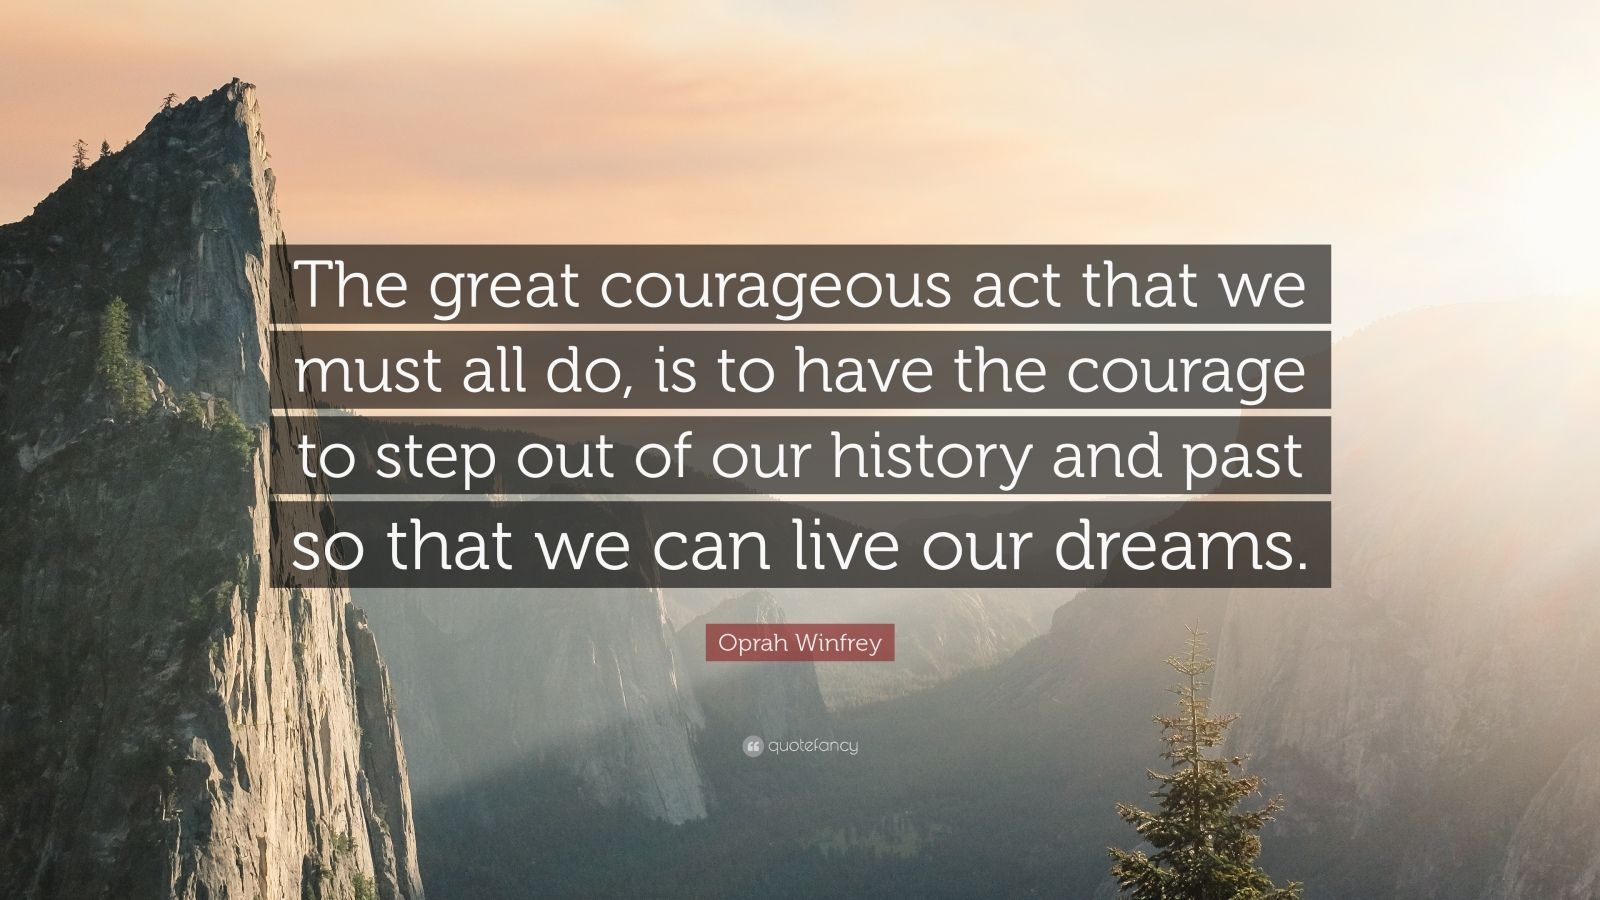 """Oprah Winfrey Quote: """"The great courageous act that we must all do, is to have the courage to step out of our history and past so that we can live our dreams."""""""